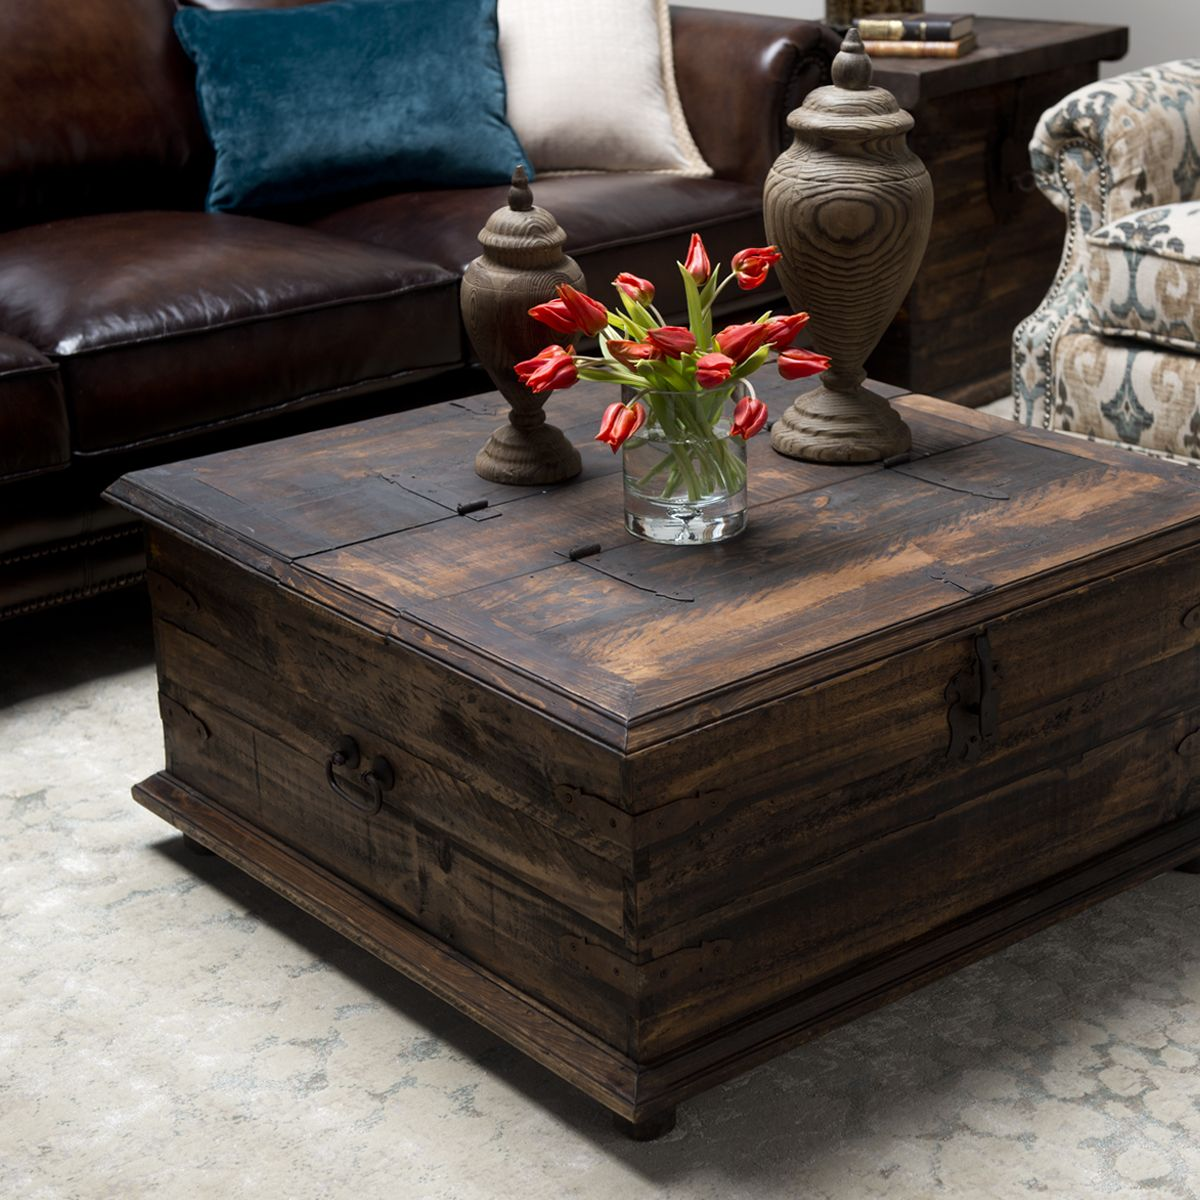 Rustic Coffee Table Trunk Includes Hinged Lid For Handy Storage